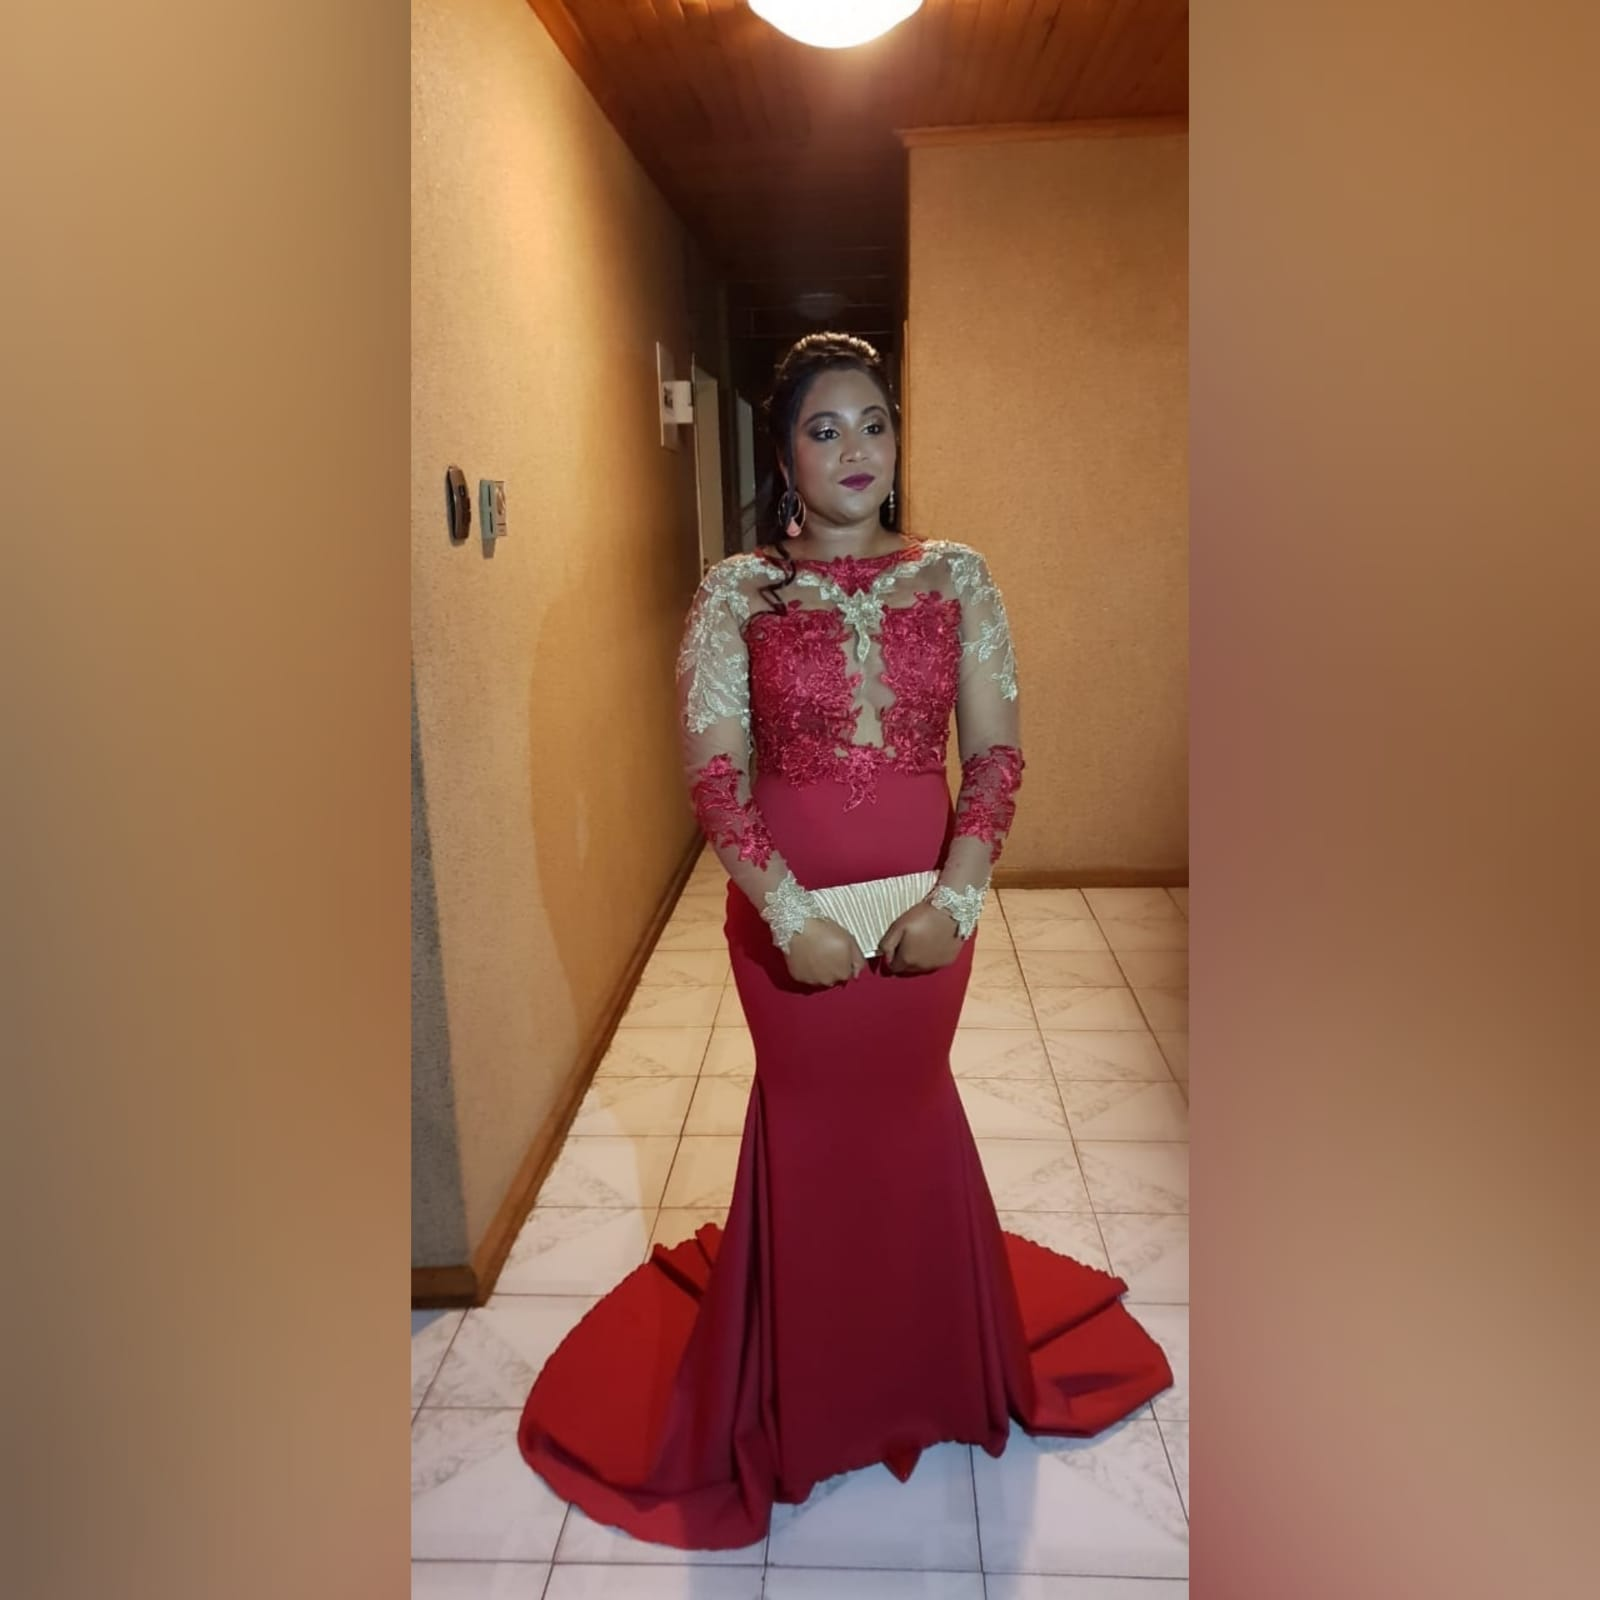 Red and gold lace soft mermaid matric dance dress 4 red and gold lace soft mermaid matric dance dress, illusion lace bodice and sleeves with a diamond shaped open back and a train.